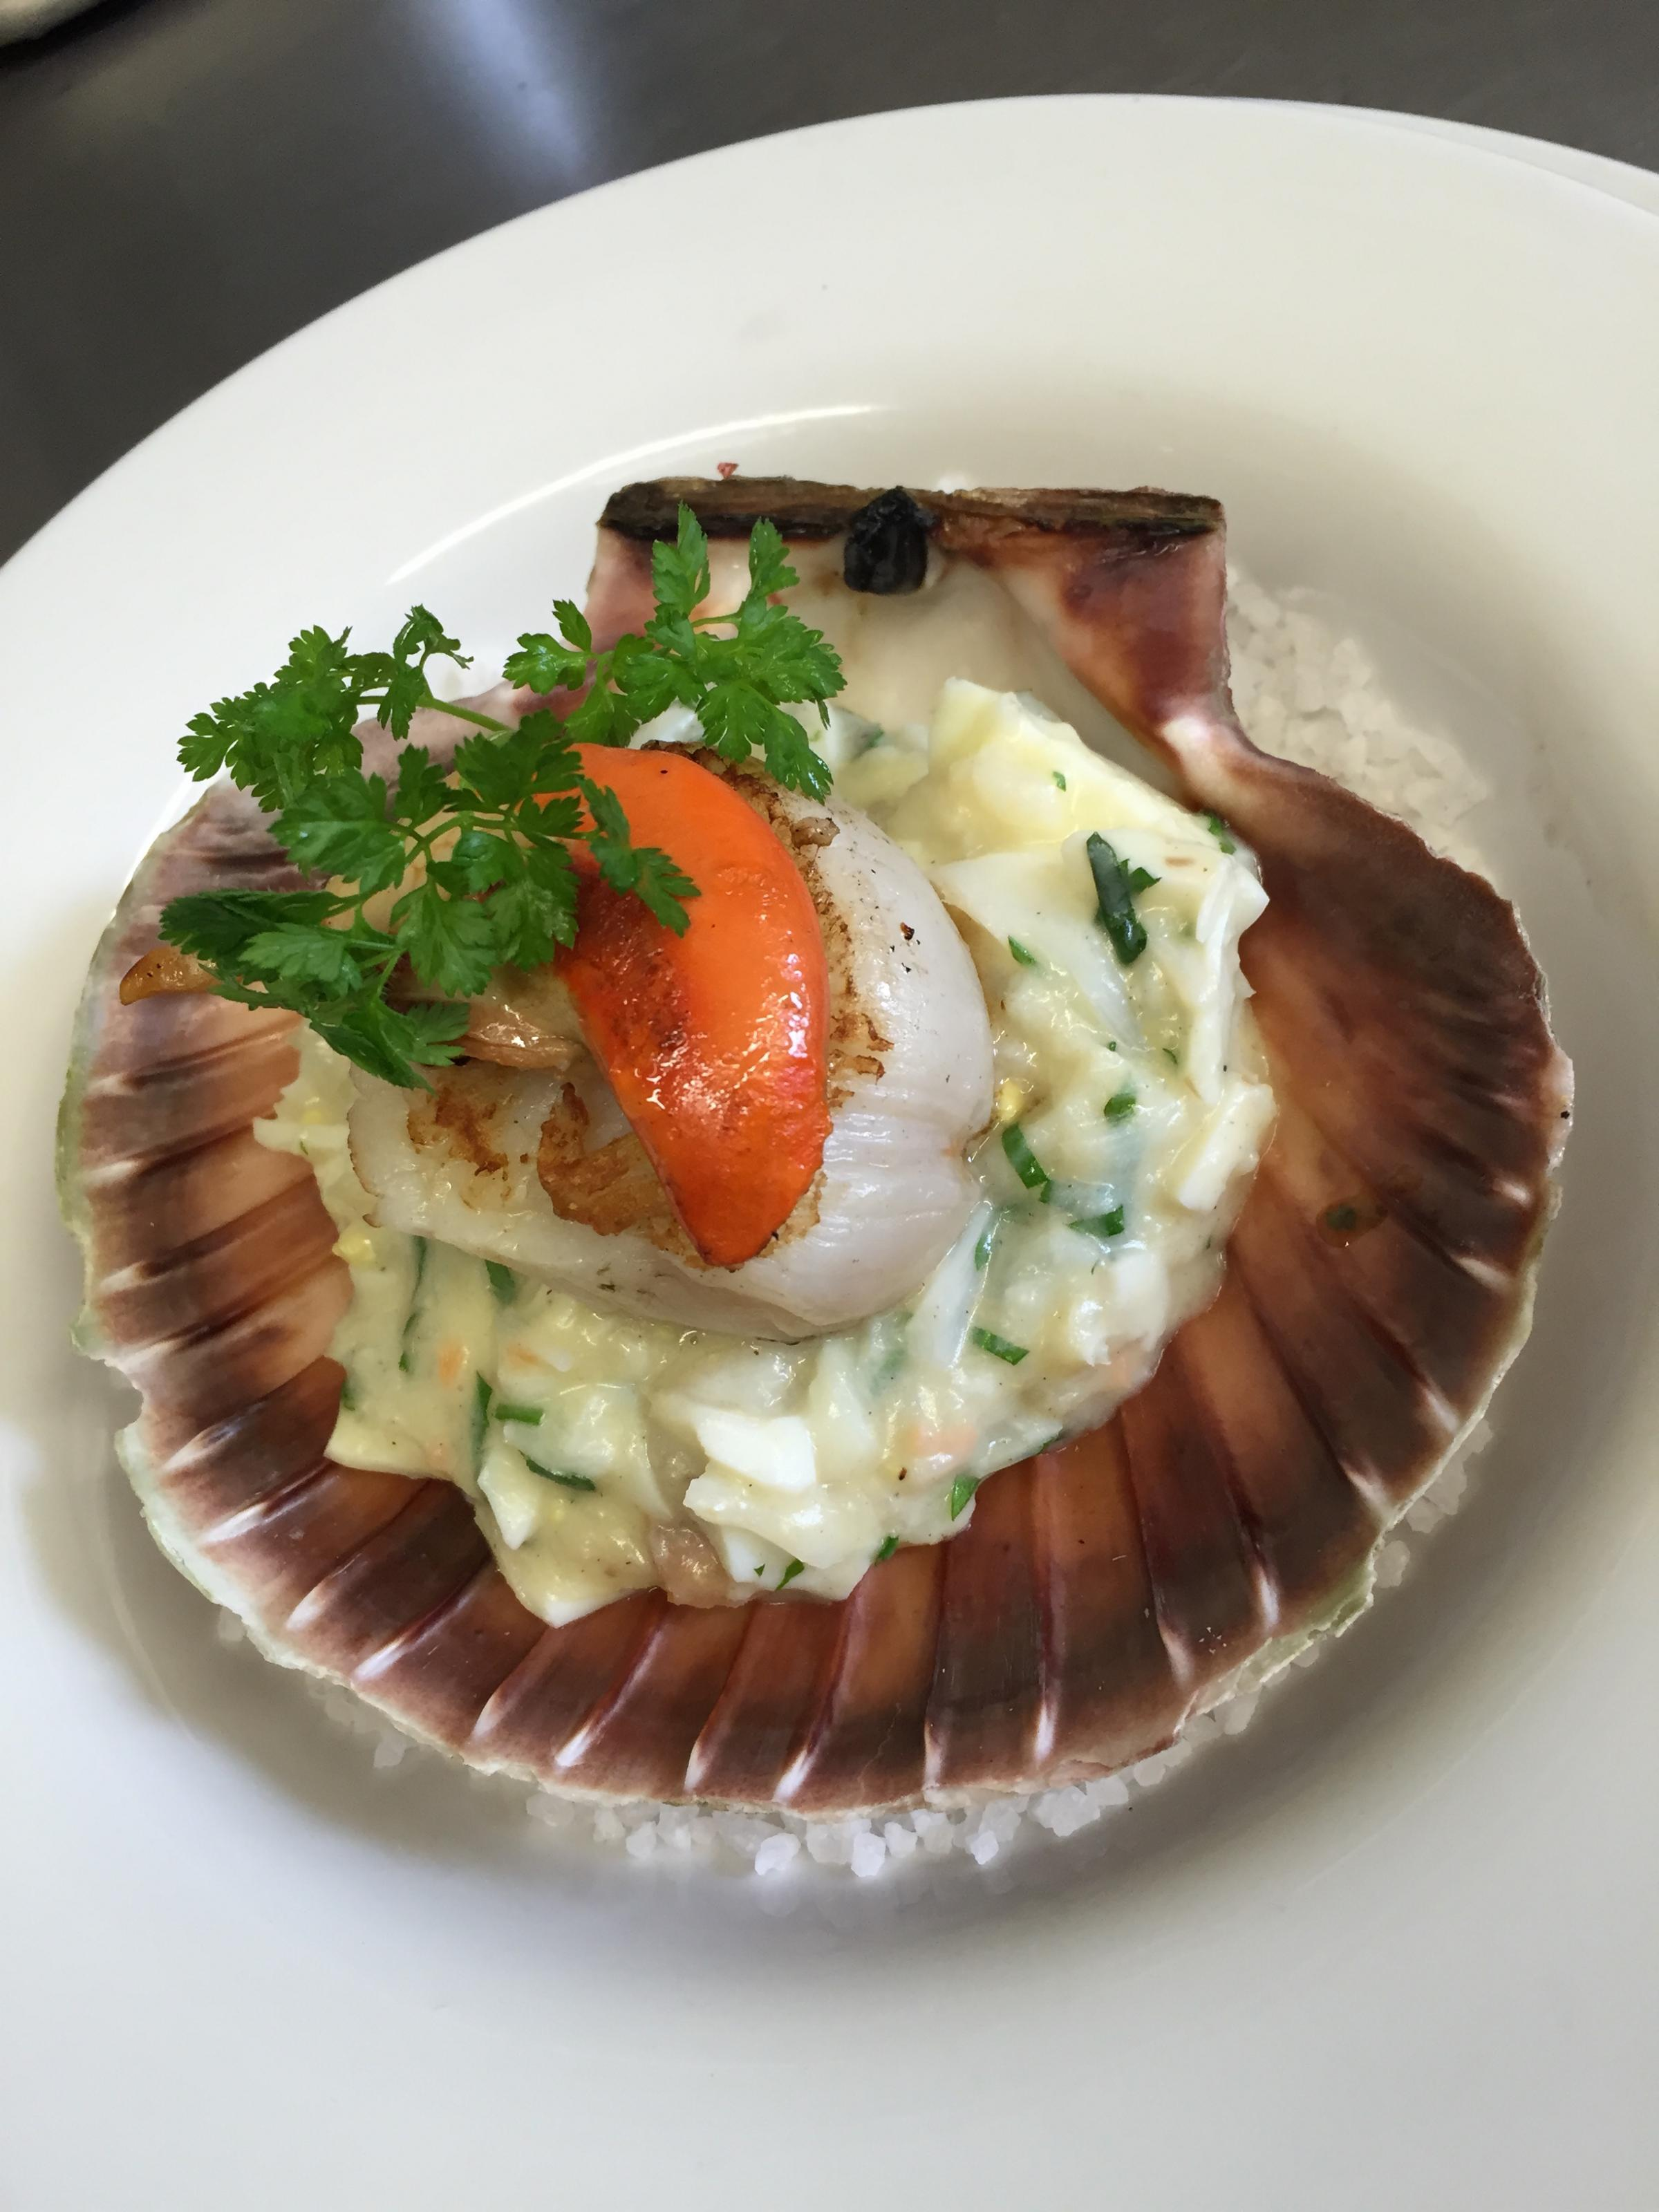 Recipe of the day: Scallop and Salted Cod Sauce Ecossaise, by Frederick Berkmiller of L'Escargot Bleu and Blanc